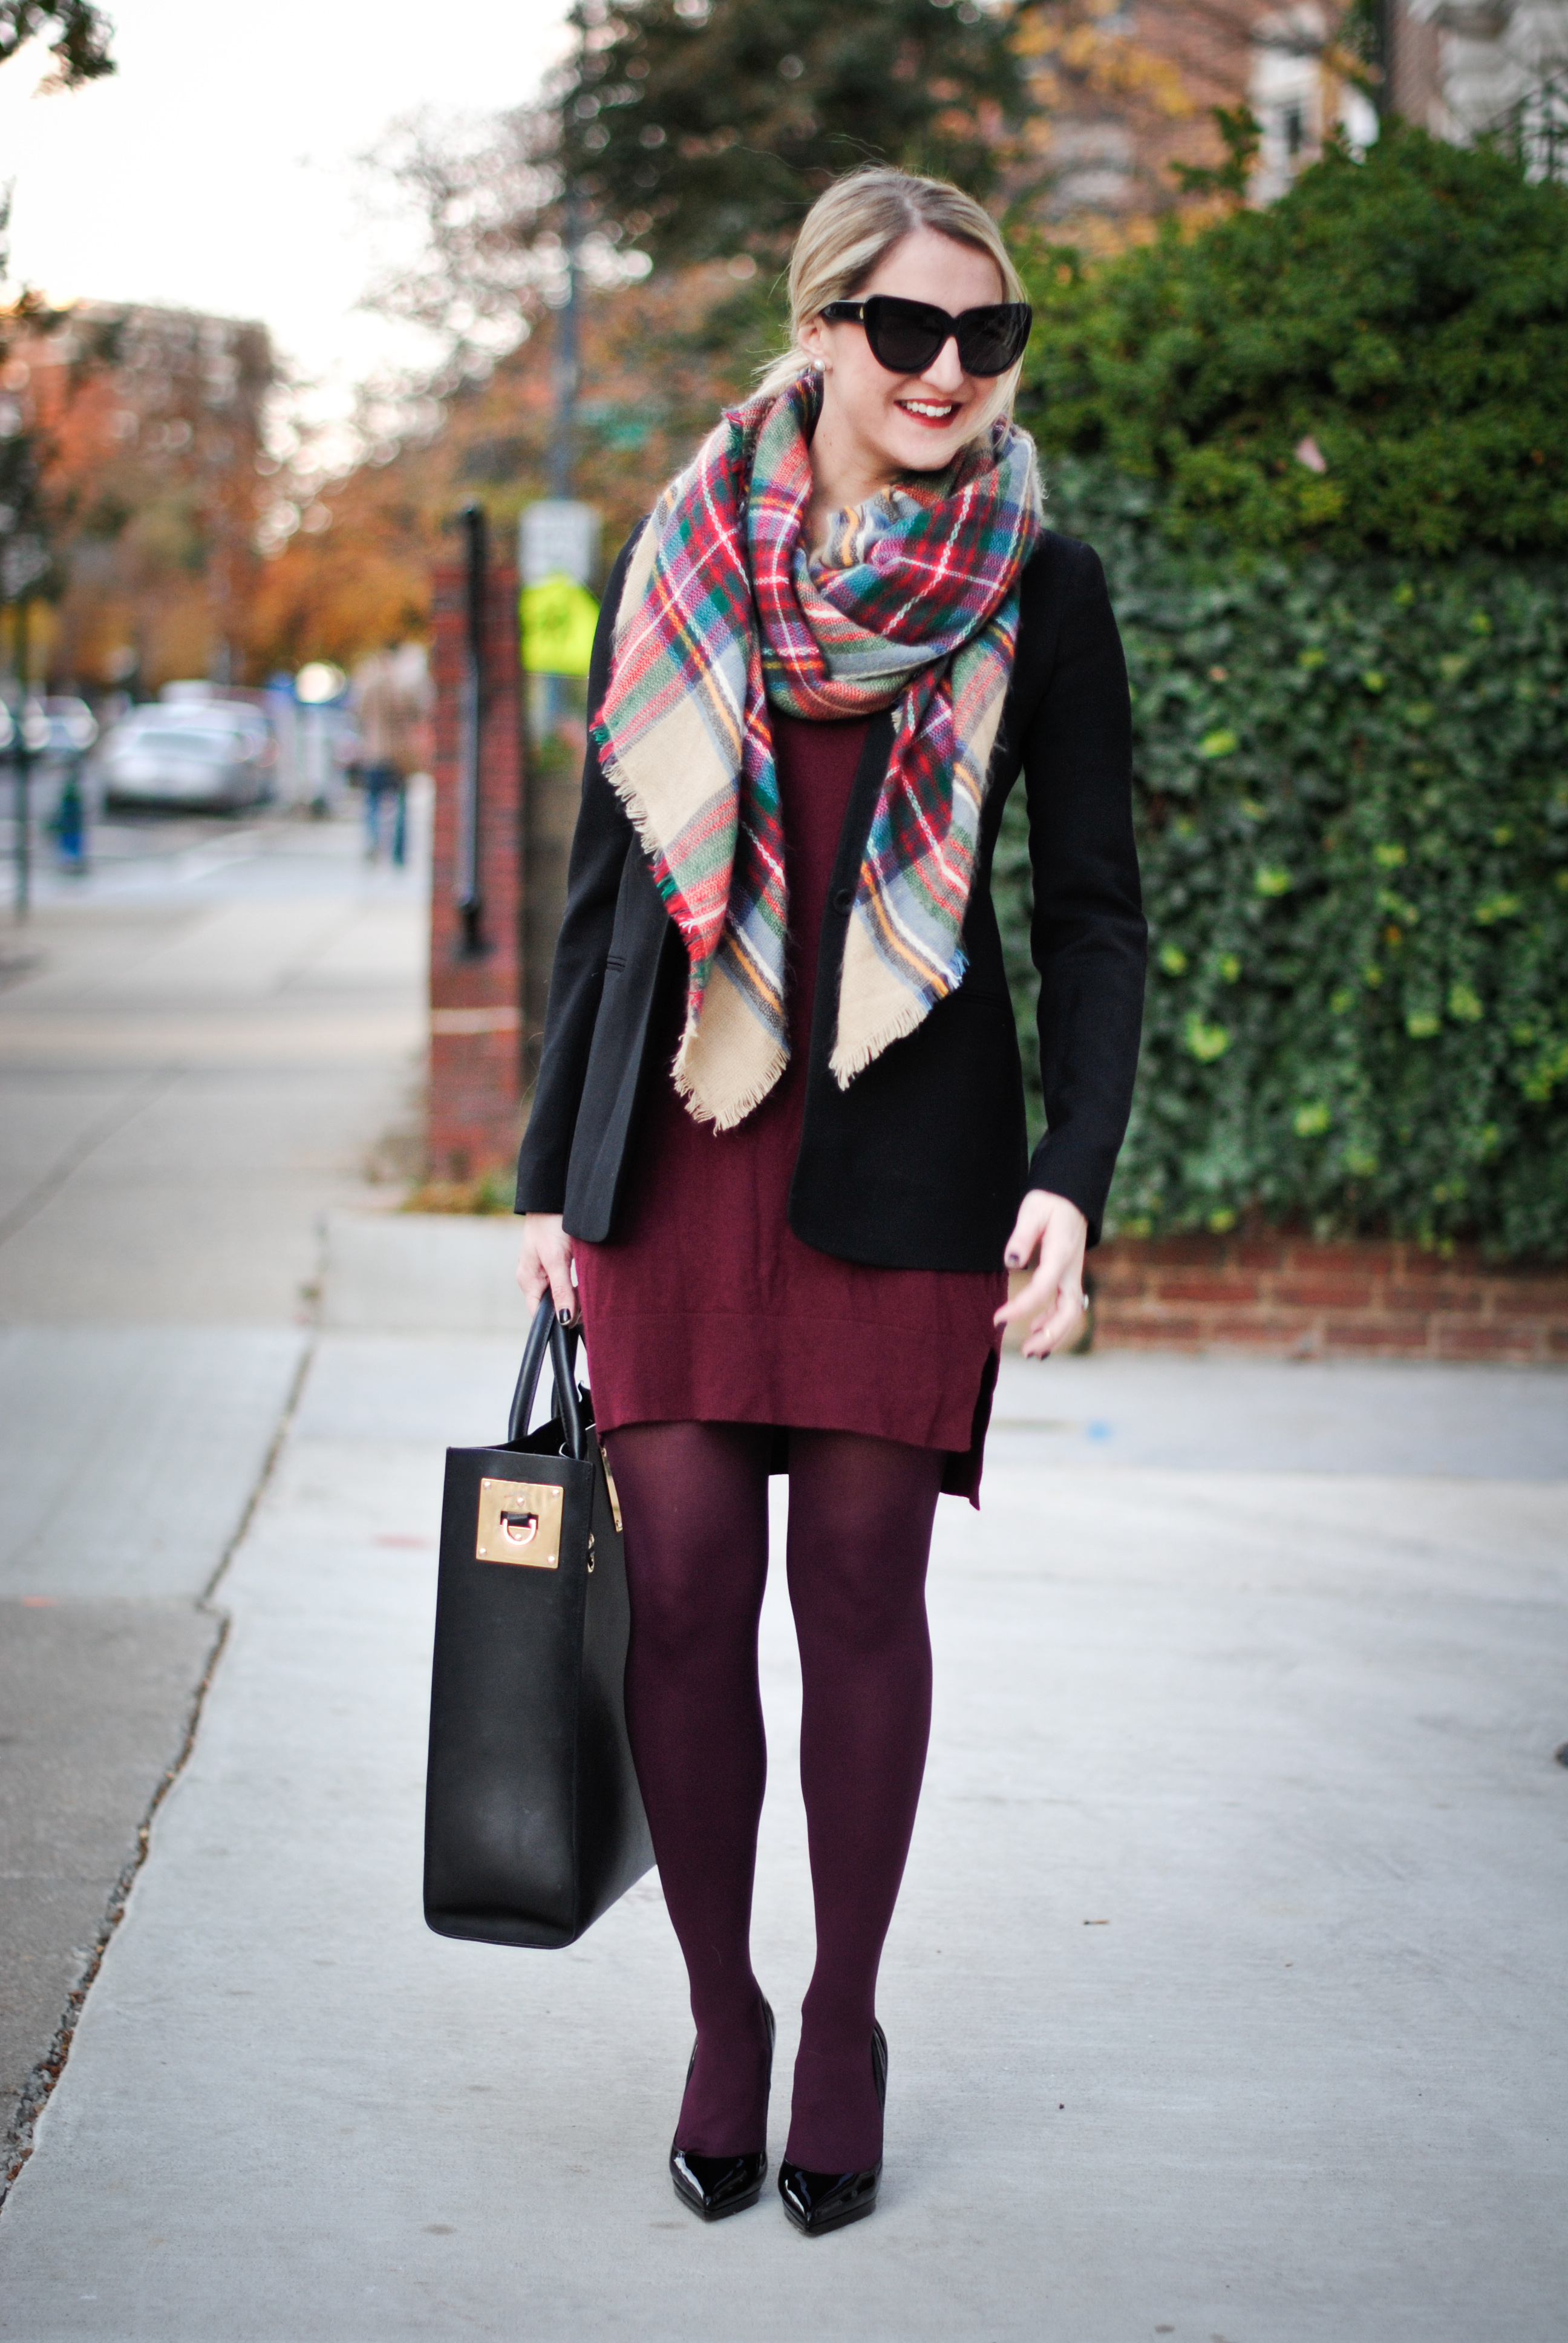 woman wears a burgundy tights with a casual ensemble